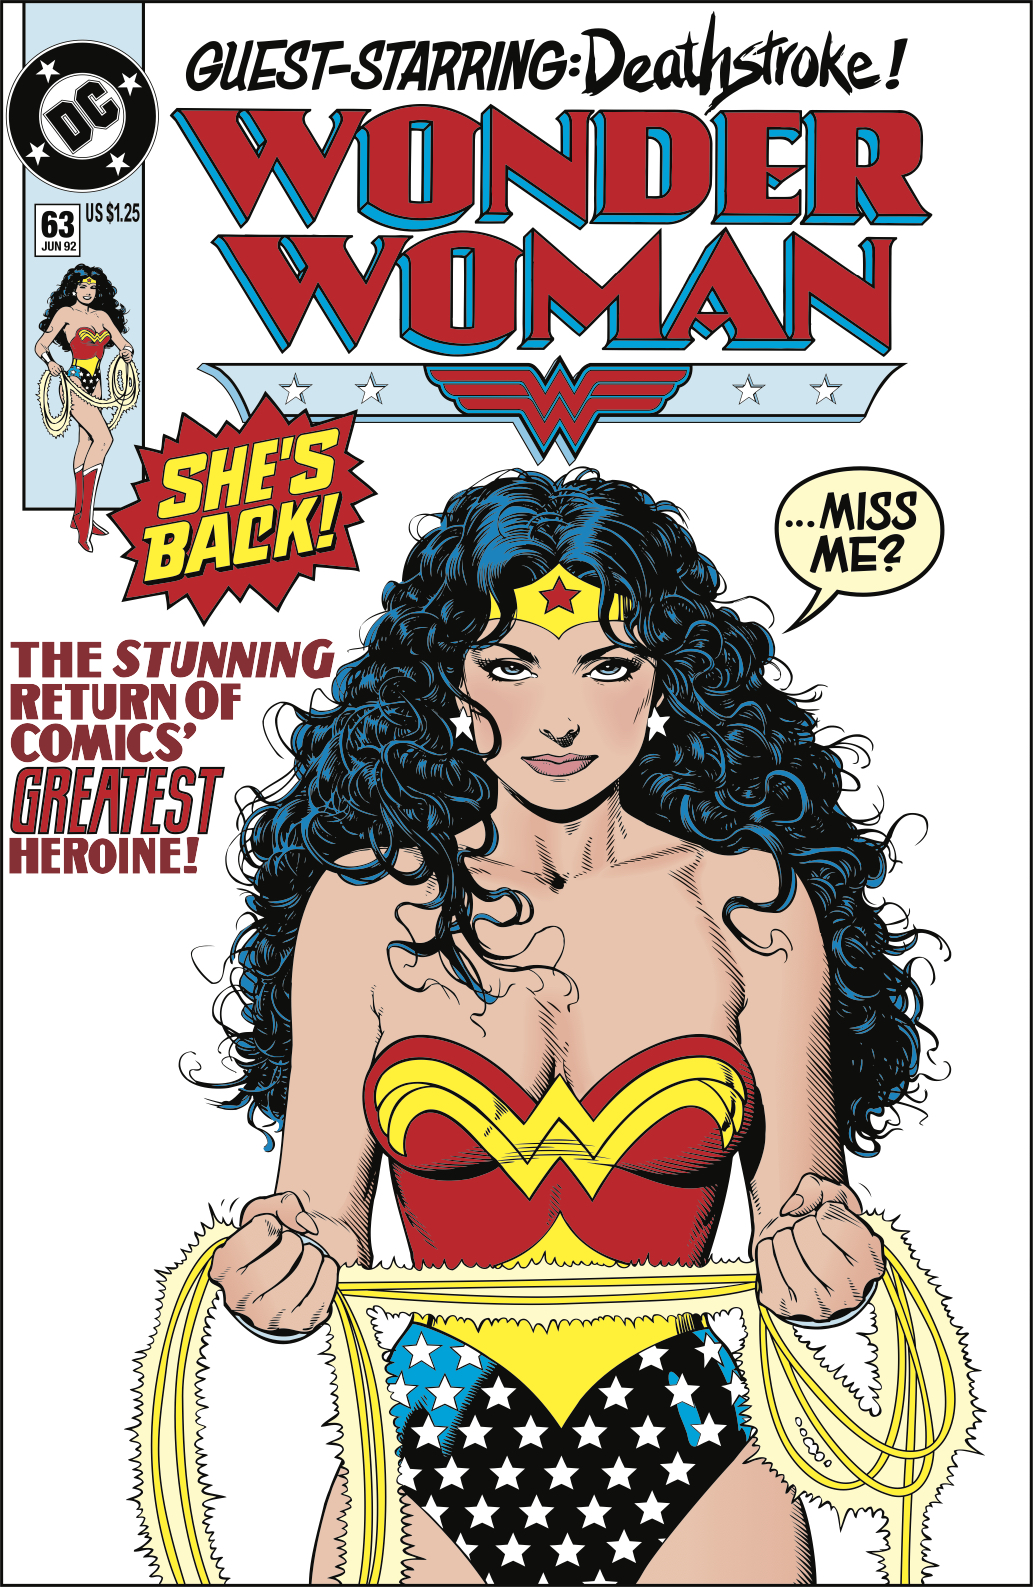 1992: Comics go sexy in the 1990s. Wonder Woman is no exception.